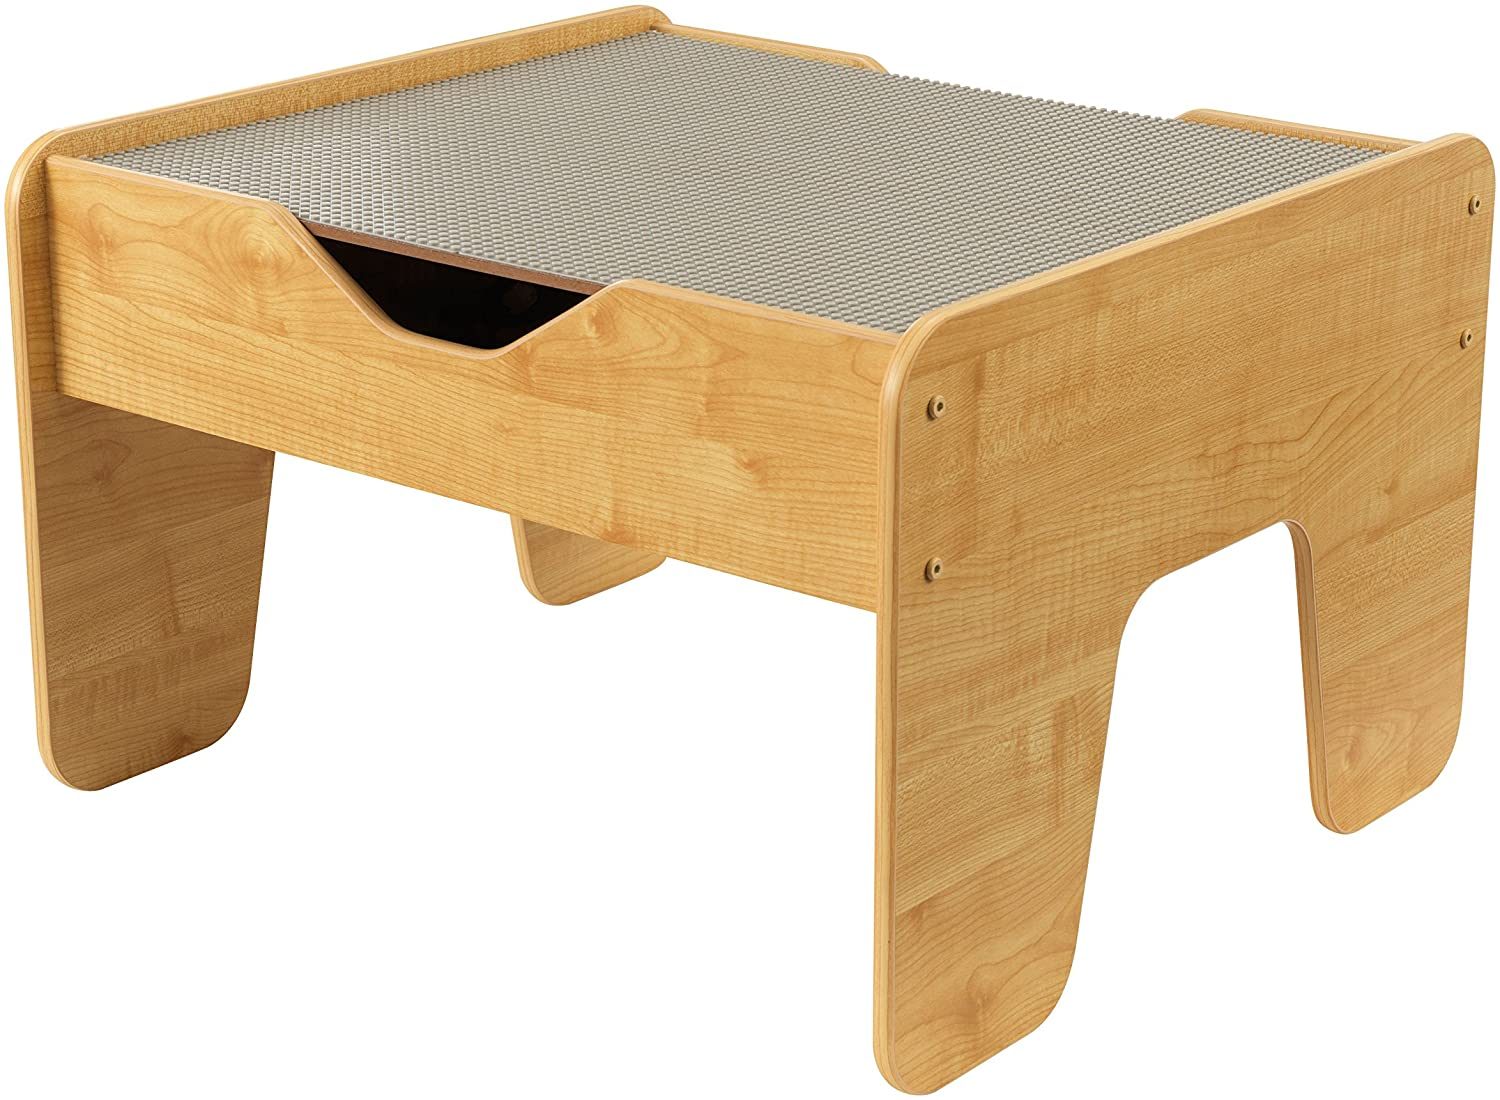 KidKraft 2-in-1 Lego Tables with Storage and Board, Gray/Natural